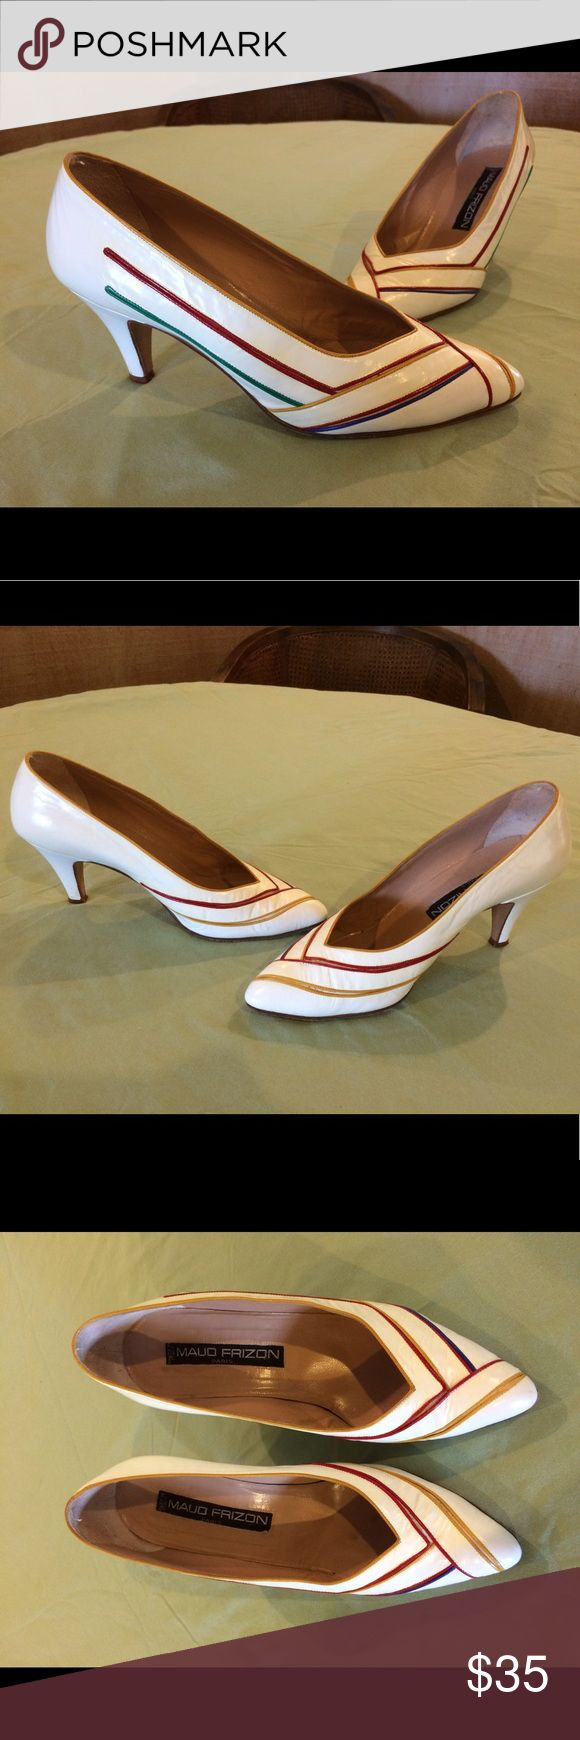 """Vintage Maud Frizon Paris White Leather Pumps White leather with inlaid stripes of green, yellow, red and blue   There is some very faint yellowing on the white. 2.5"""" heel, the tips will need replacing sometime.                                                Made in Italy 🇮🇹 Maud Frizon Shoes Heels"""